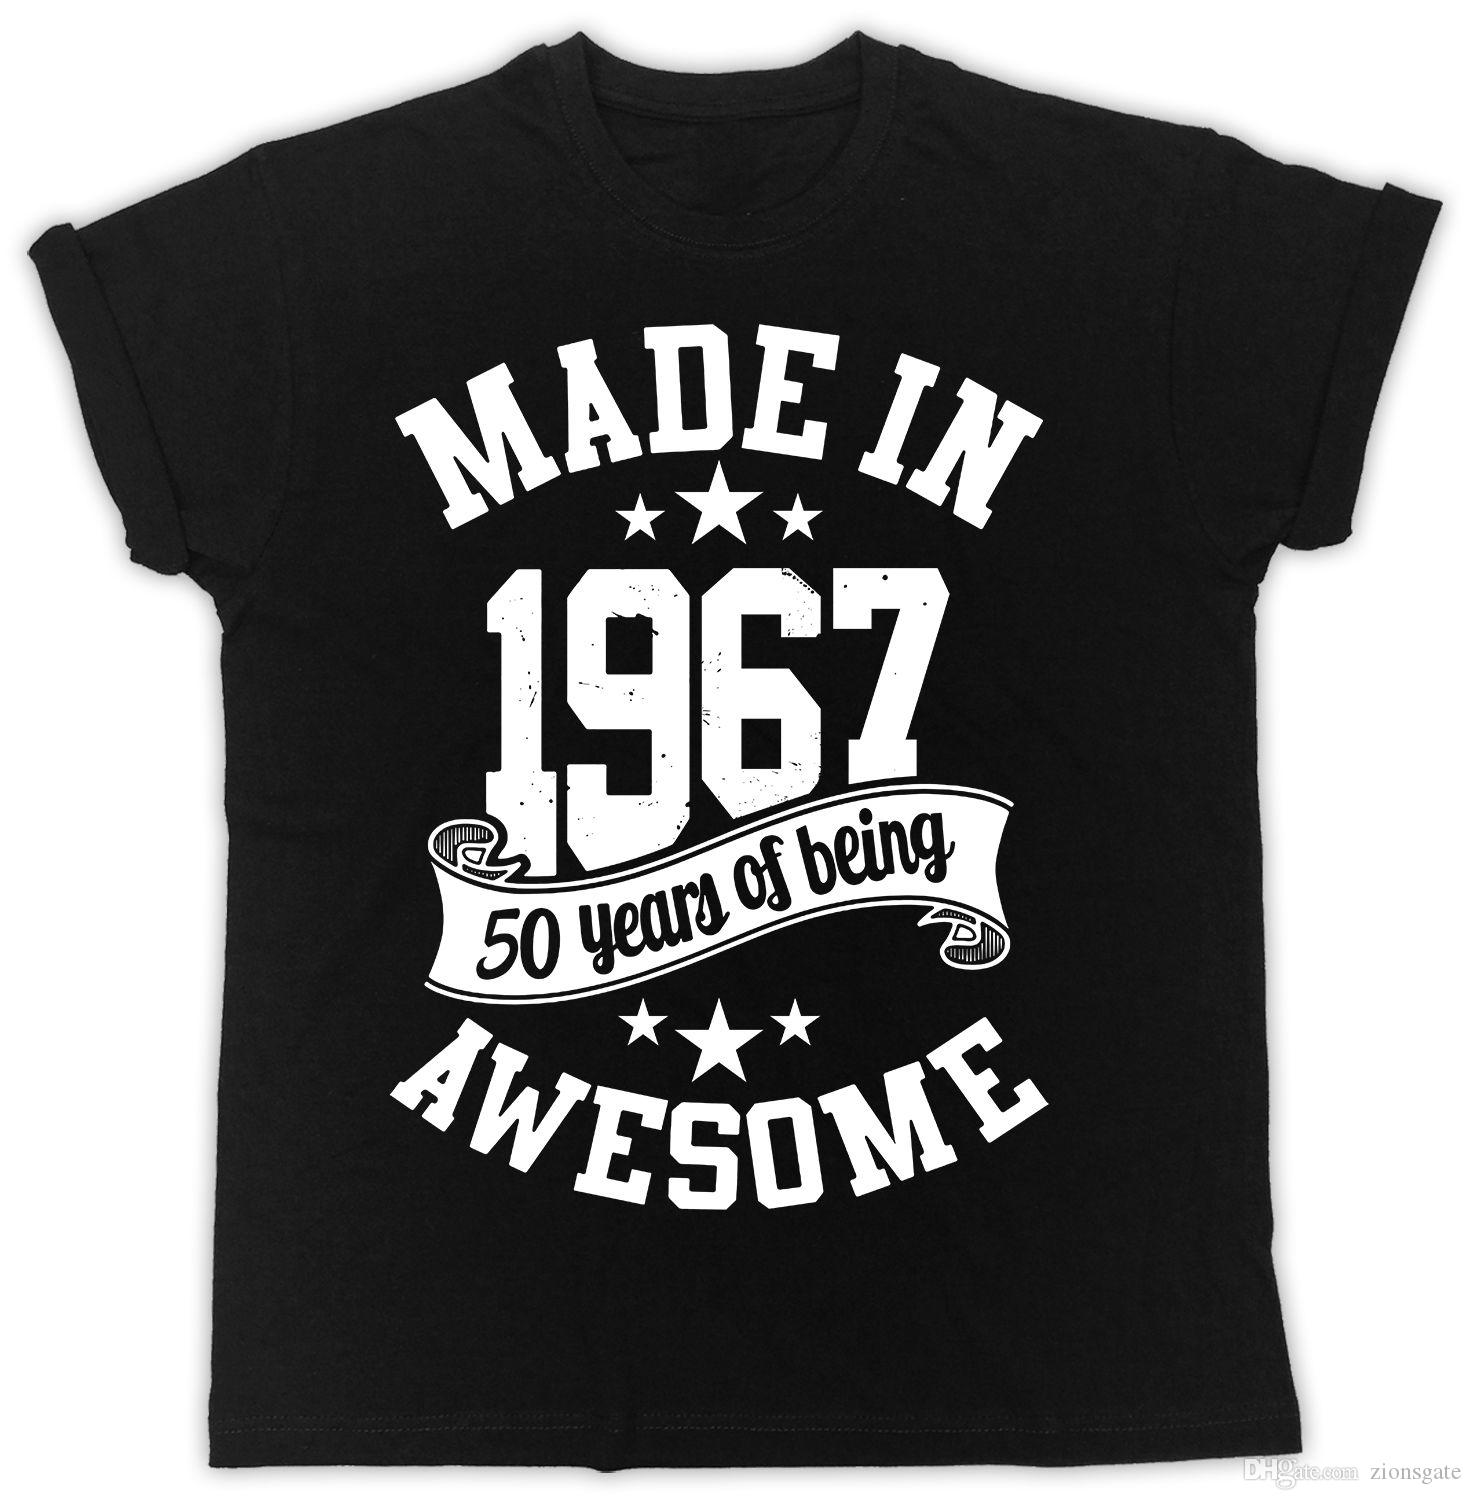 MADE IN 1967 50TH BIRTHDAY PRESENT IDEAL GIFT UNISEX BLACK T SHIRT White Shirts With Designs Cloth Shirt From Zionsgate 1082